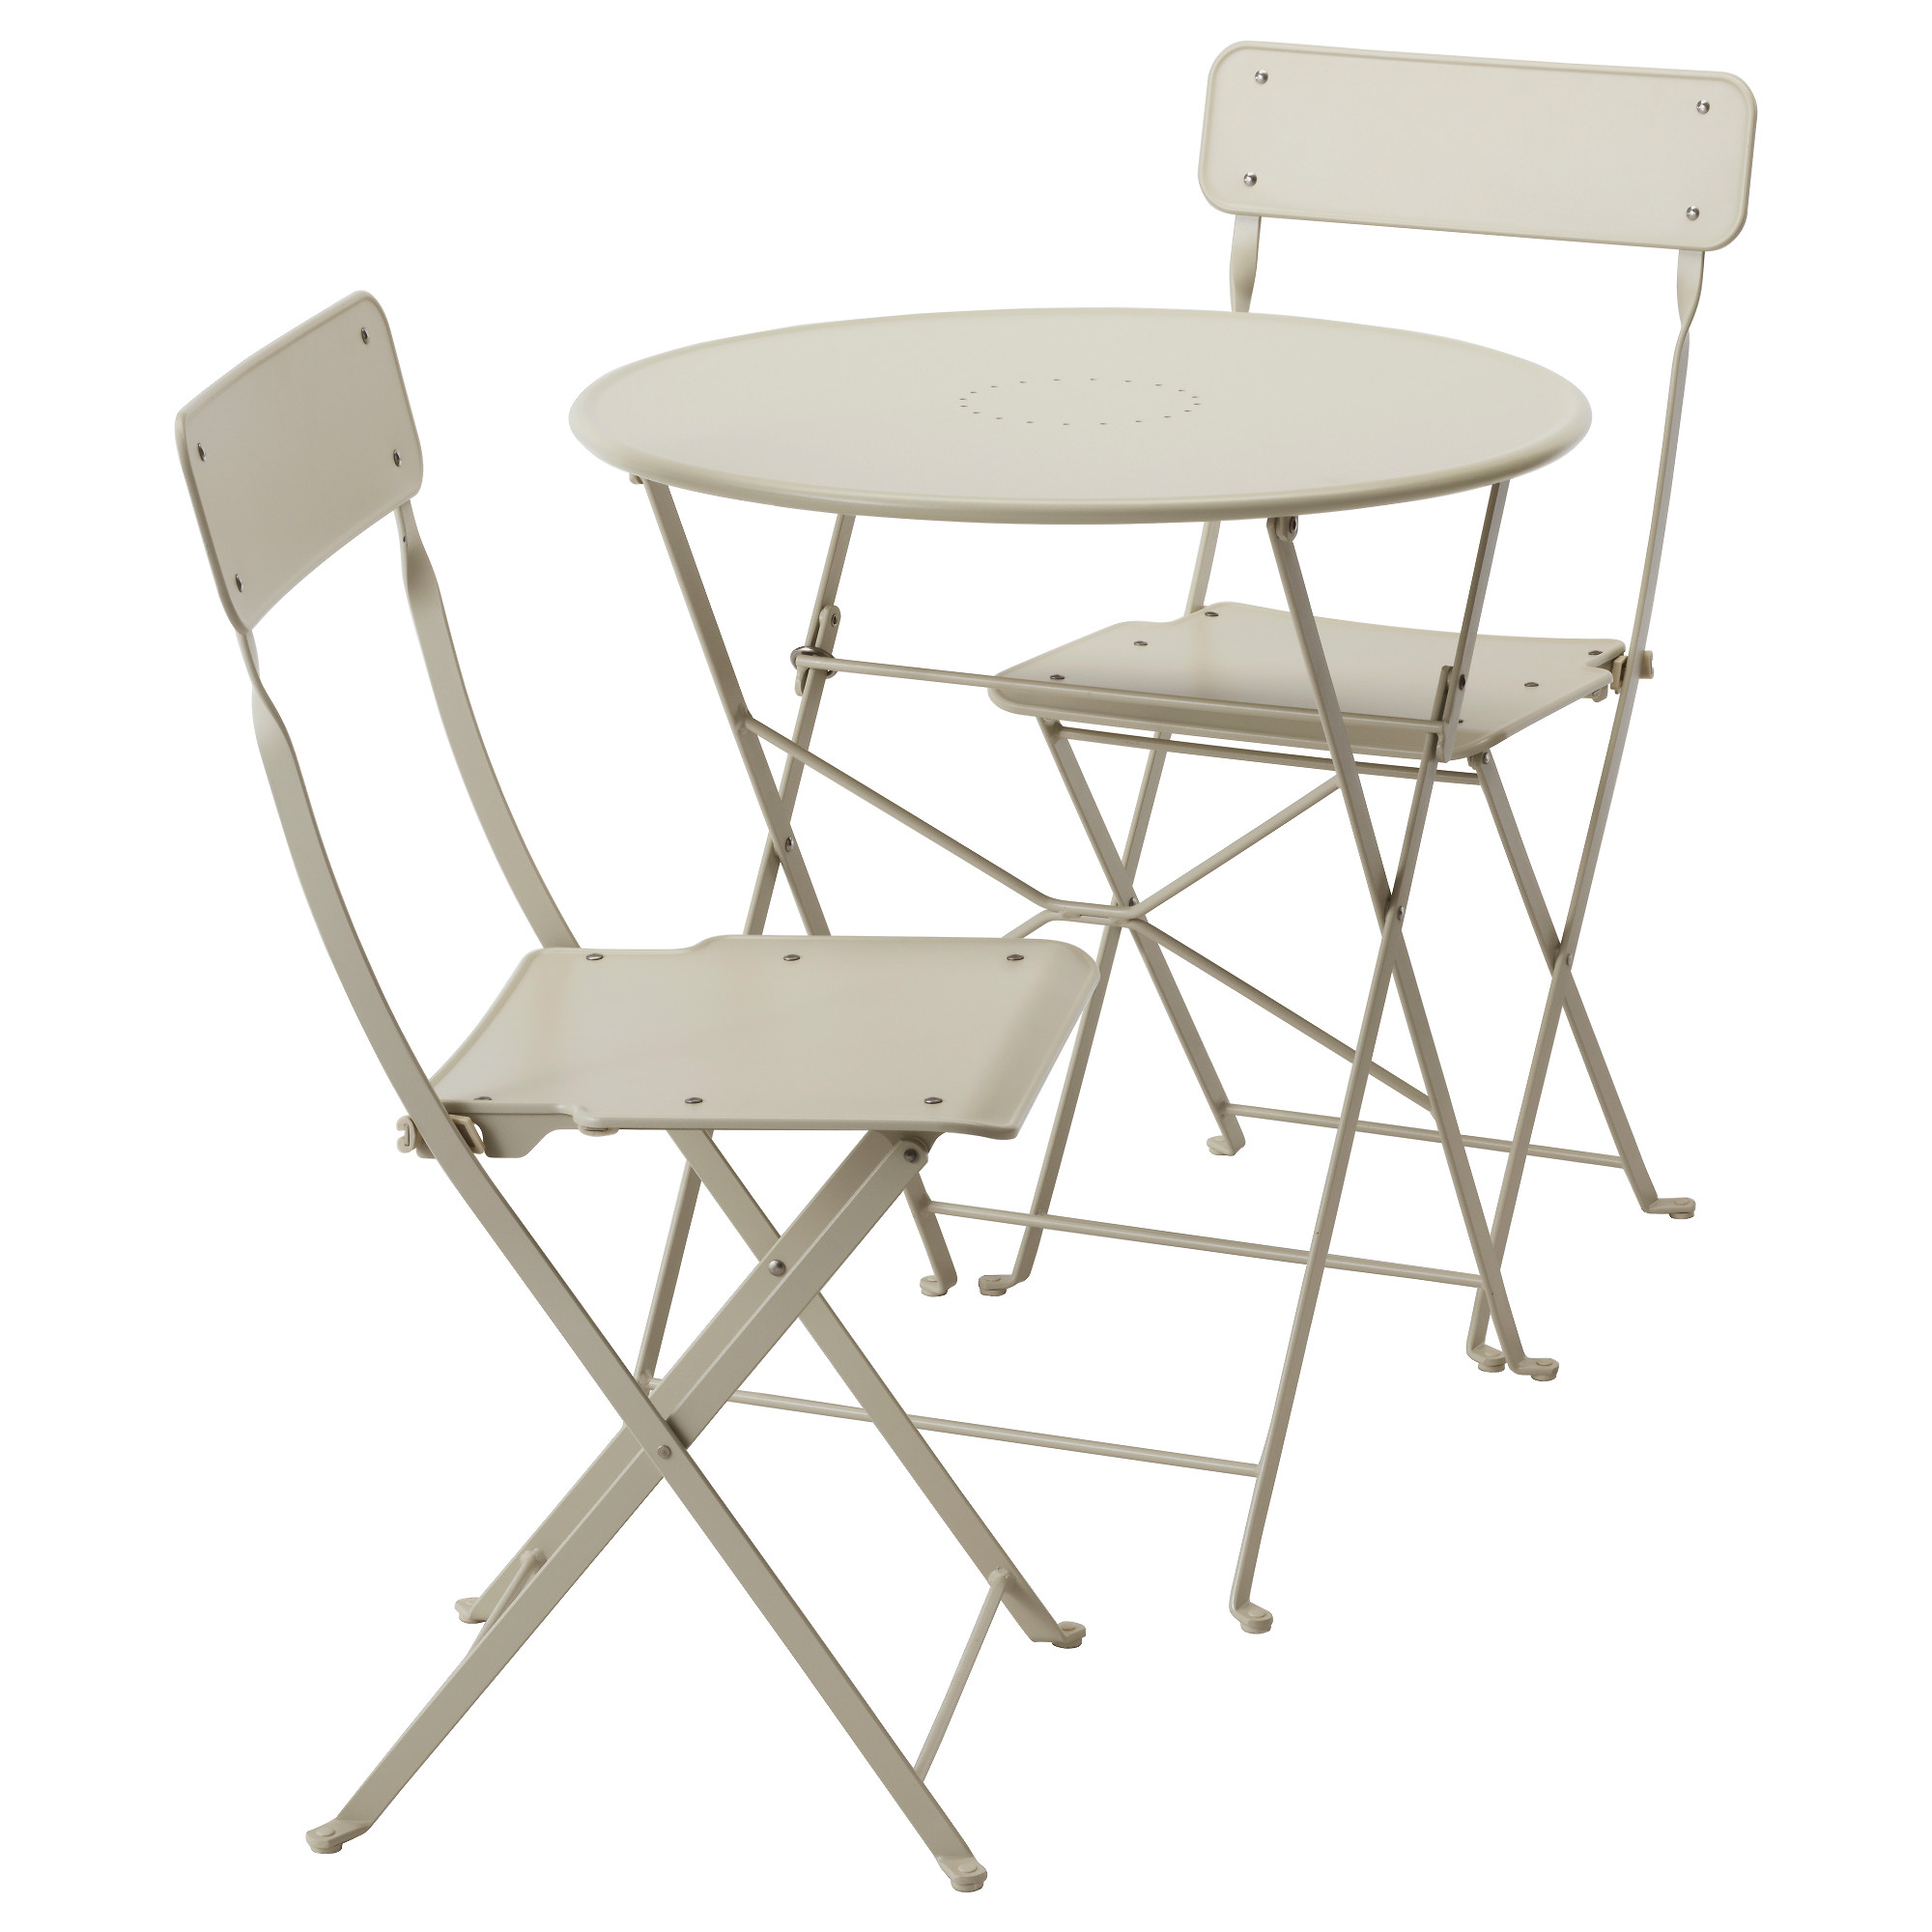 saltholmen table and 2 folding chairs, outdoor outdoor table and chairs ebay AZRXRHZ